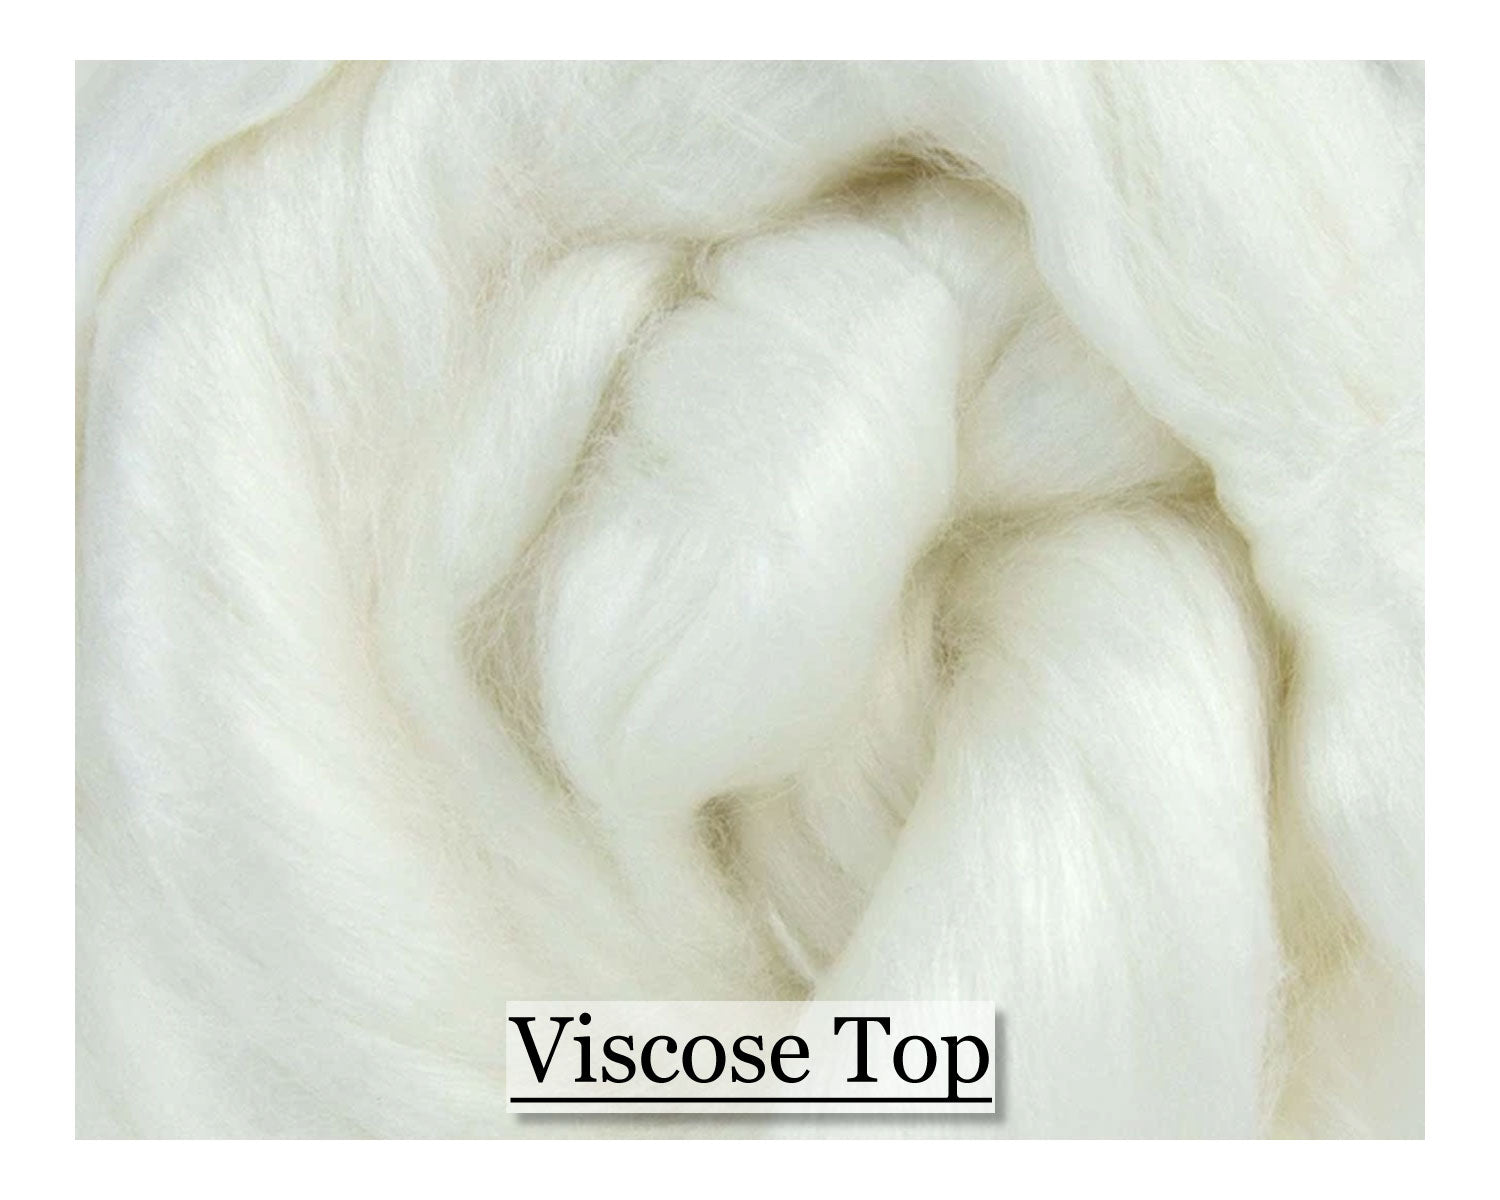 Viscose Top - 8oz